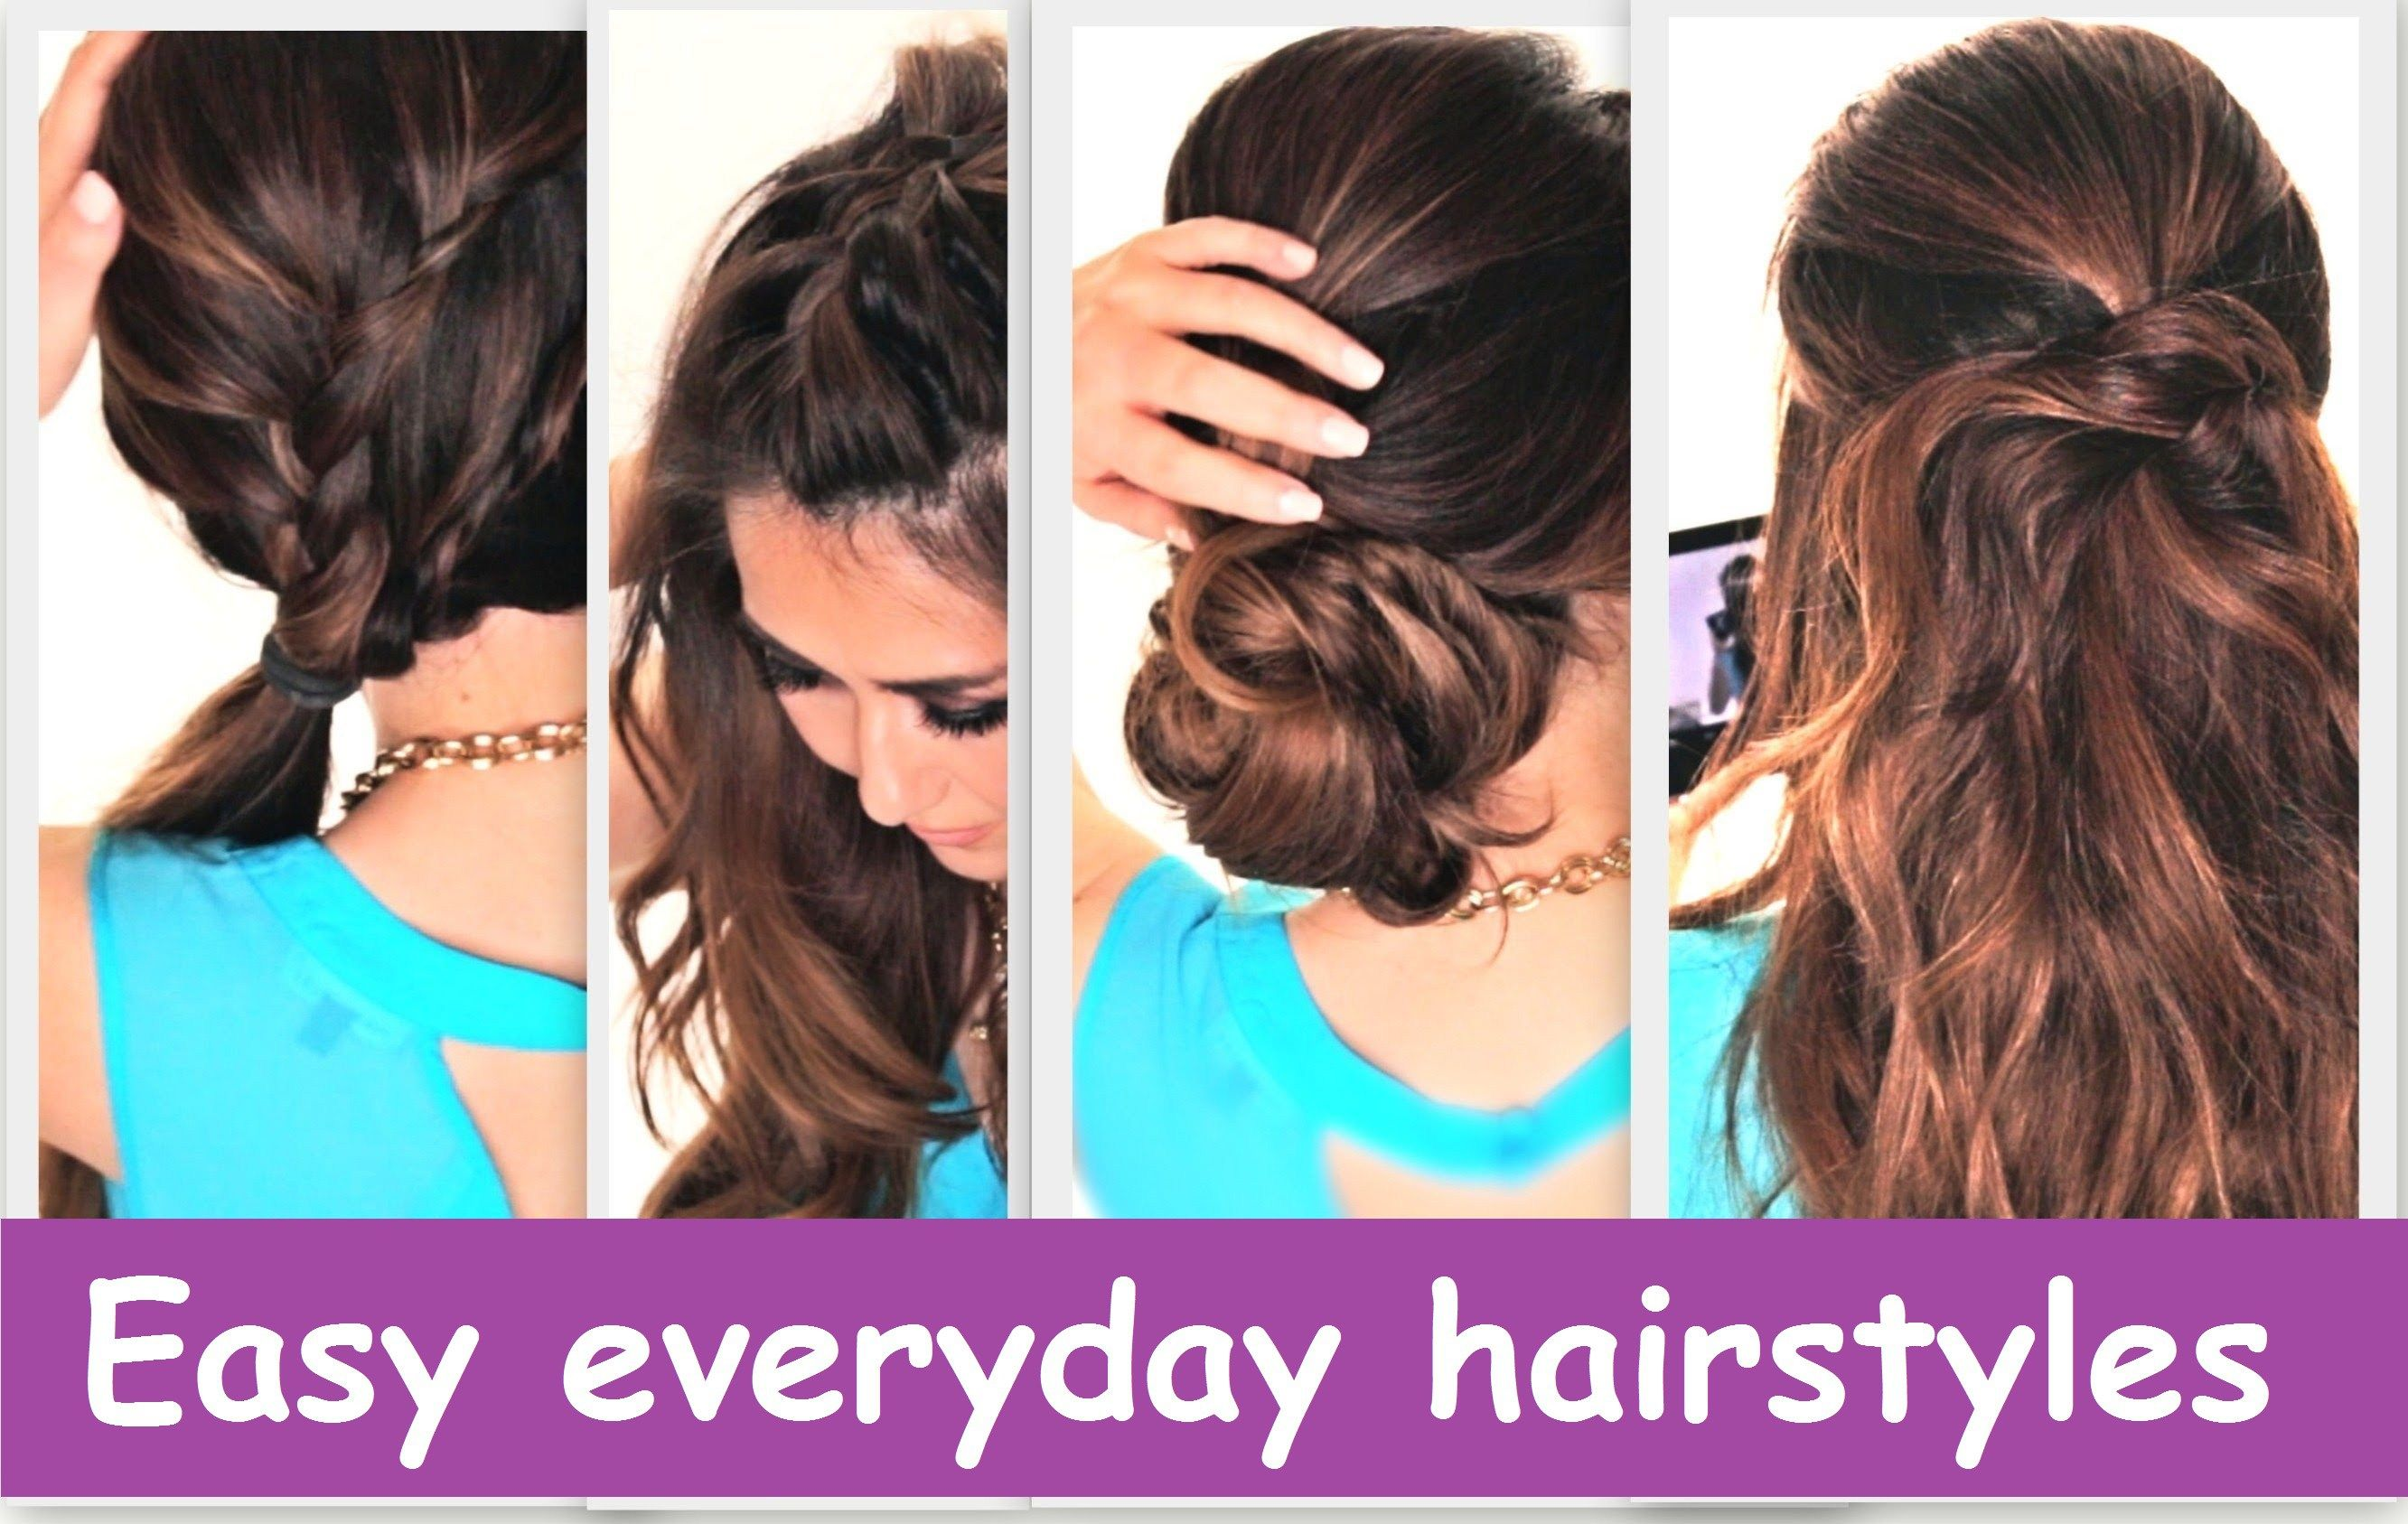 The best easy everyday hairstyles images collection related to easy